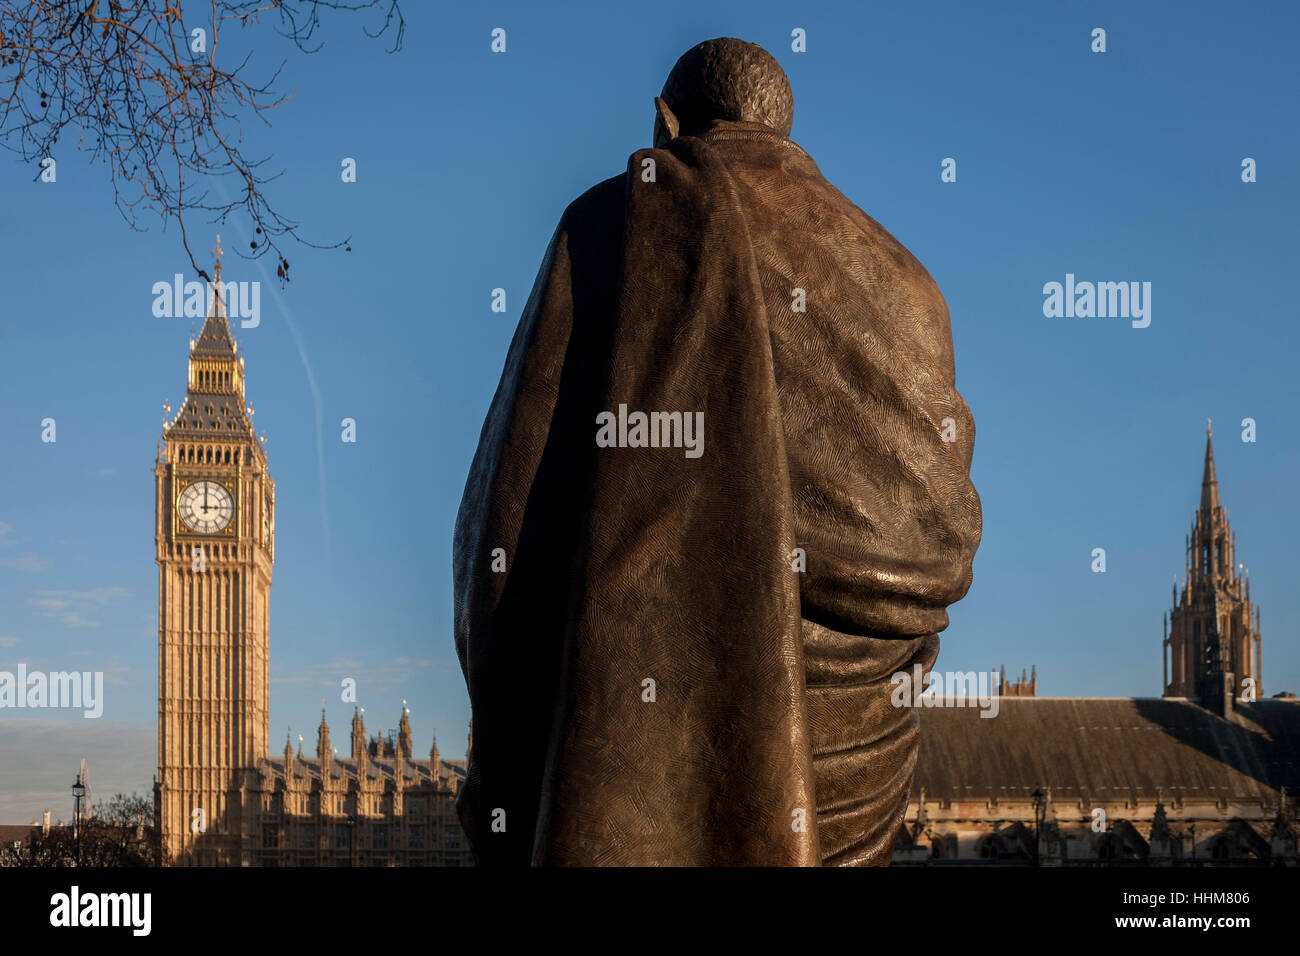 The monument to Indian leader Mahatma Gandhi with the British Houses of Parliament in the background, on 18th January - Stock Image